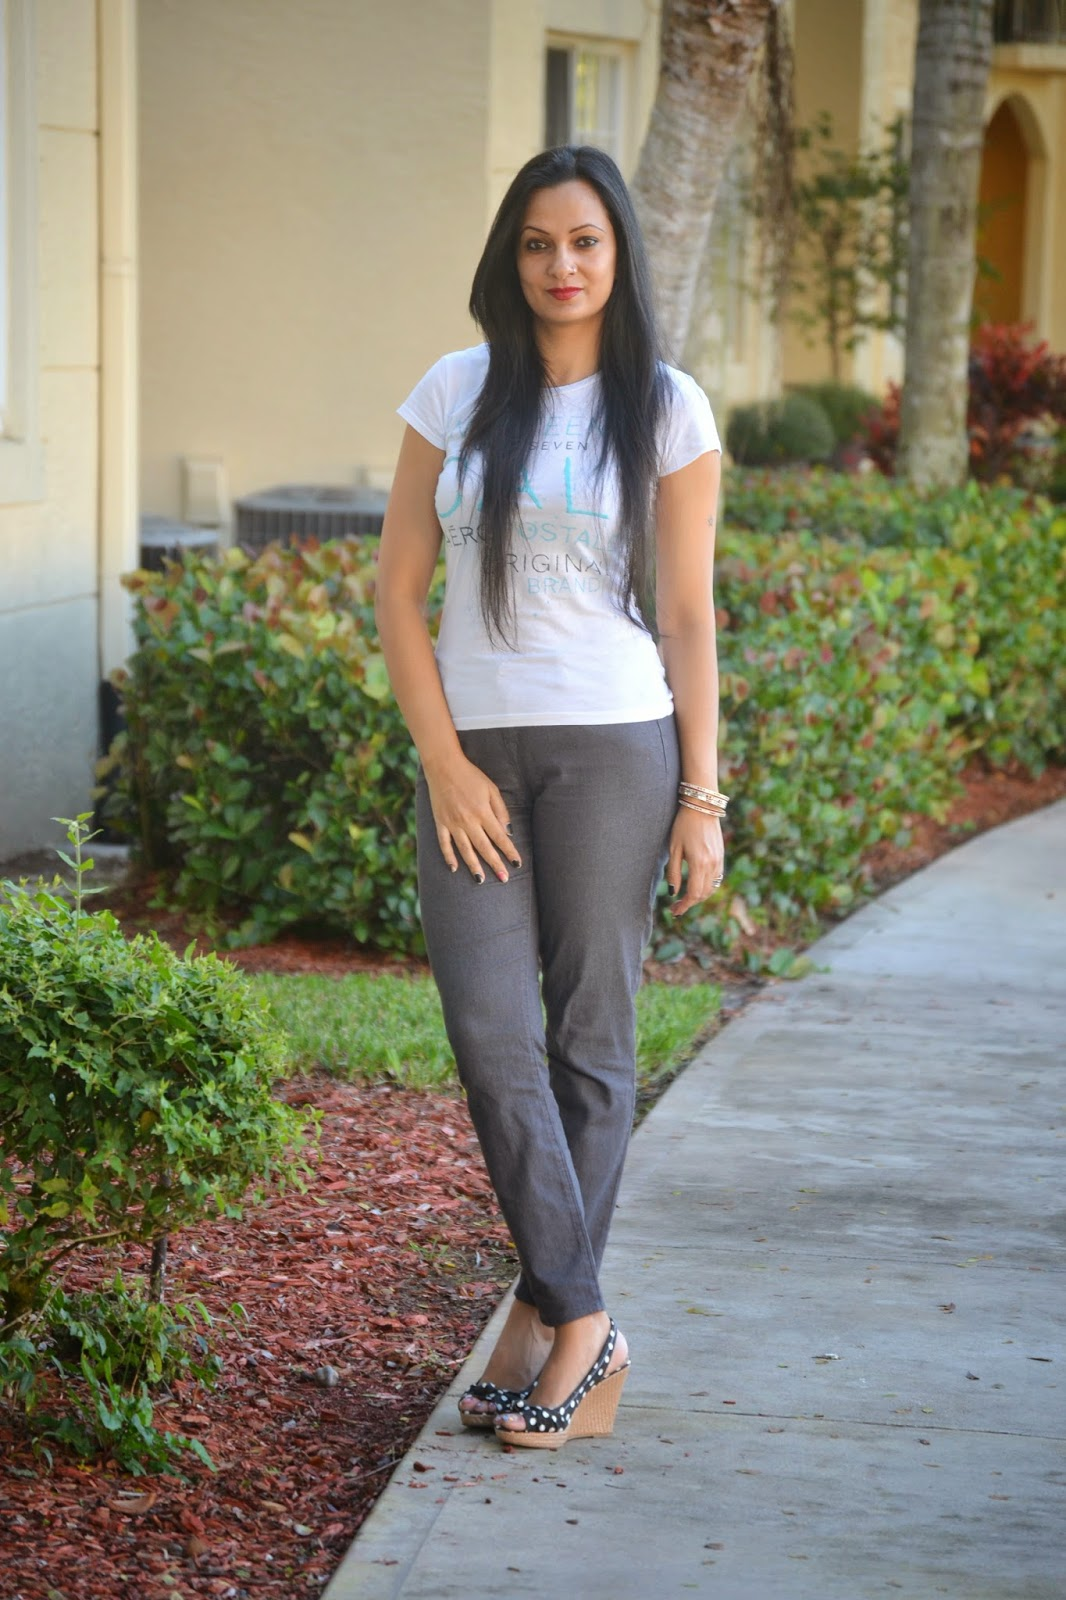 Sunday Look aeropostale t shirt grey skinny jeans polka dot american eagle wedges www.sandysandhu.co